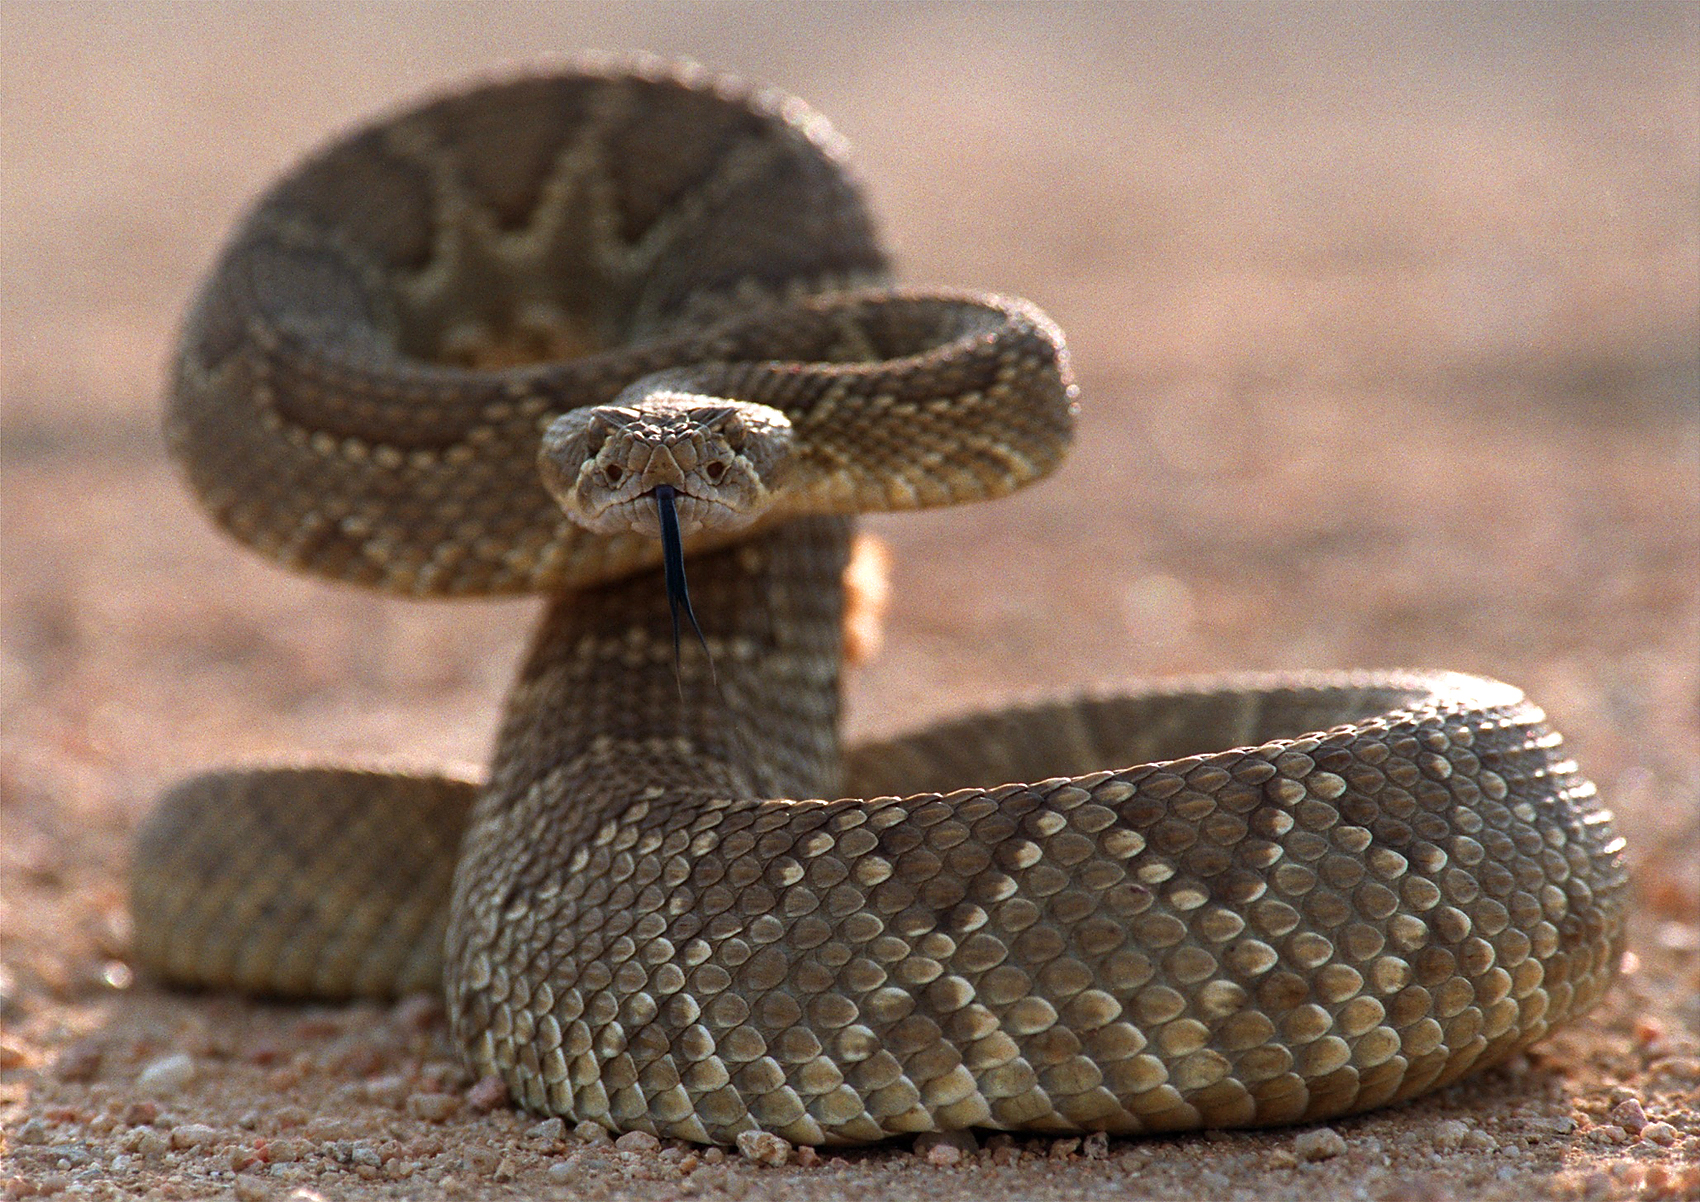 Rattlesnakes can bite after death.